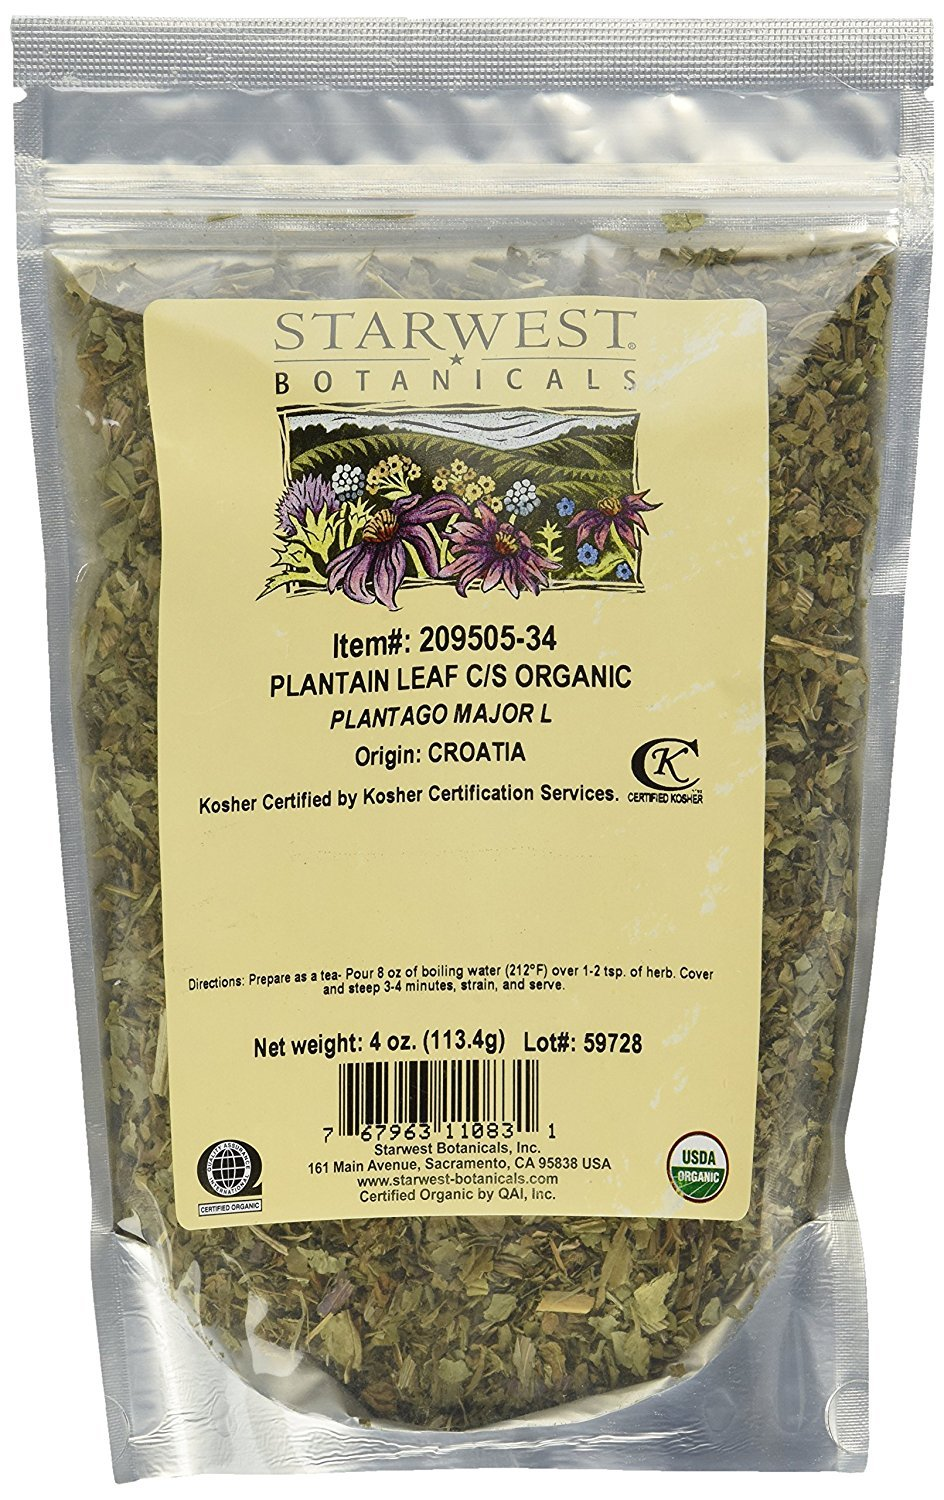 Starwest Botanicals Organic Plantain Leaf Cut, 4 Ounces